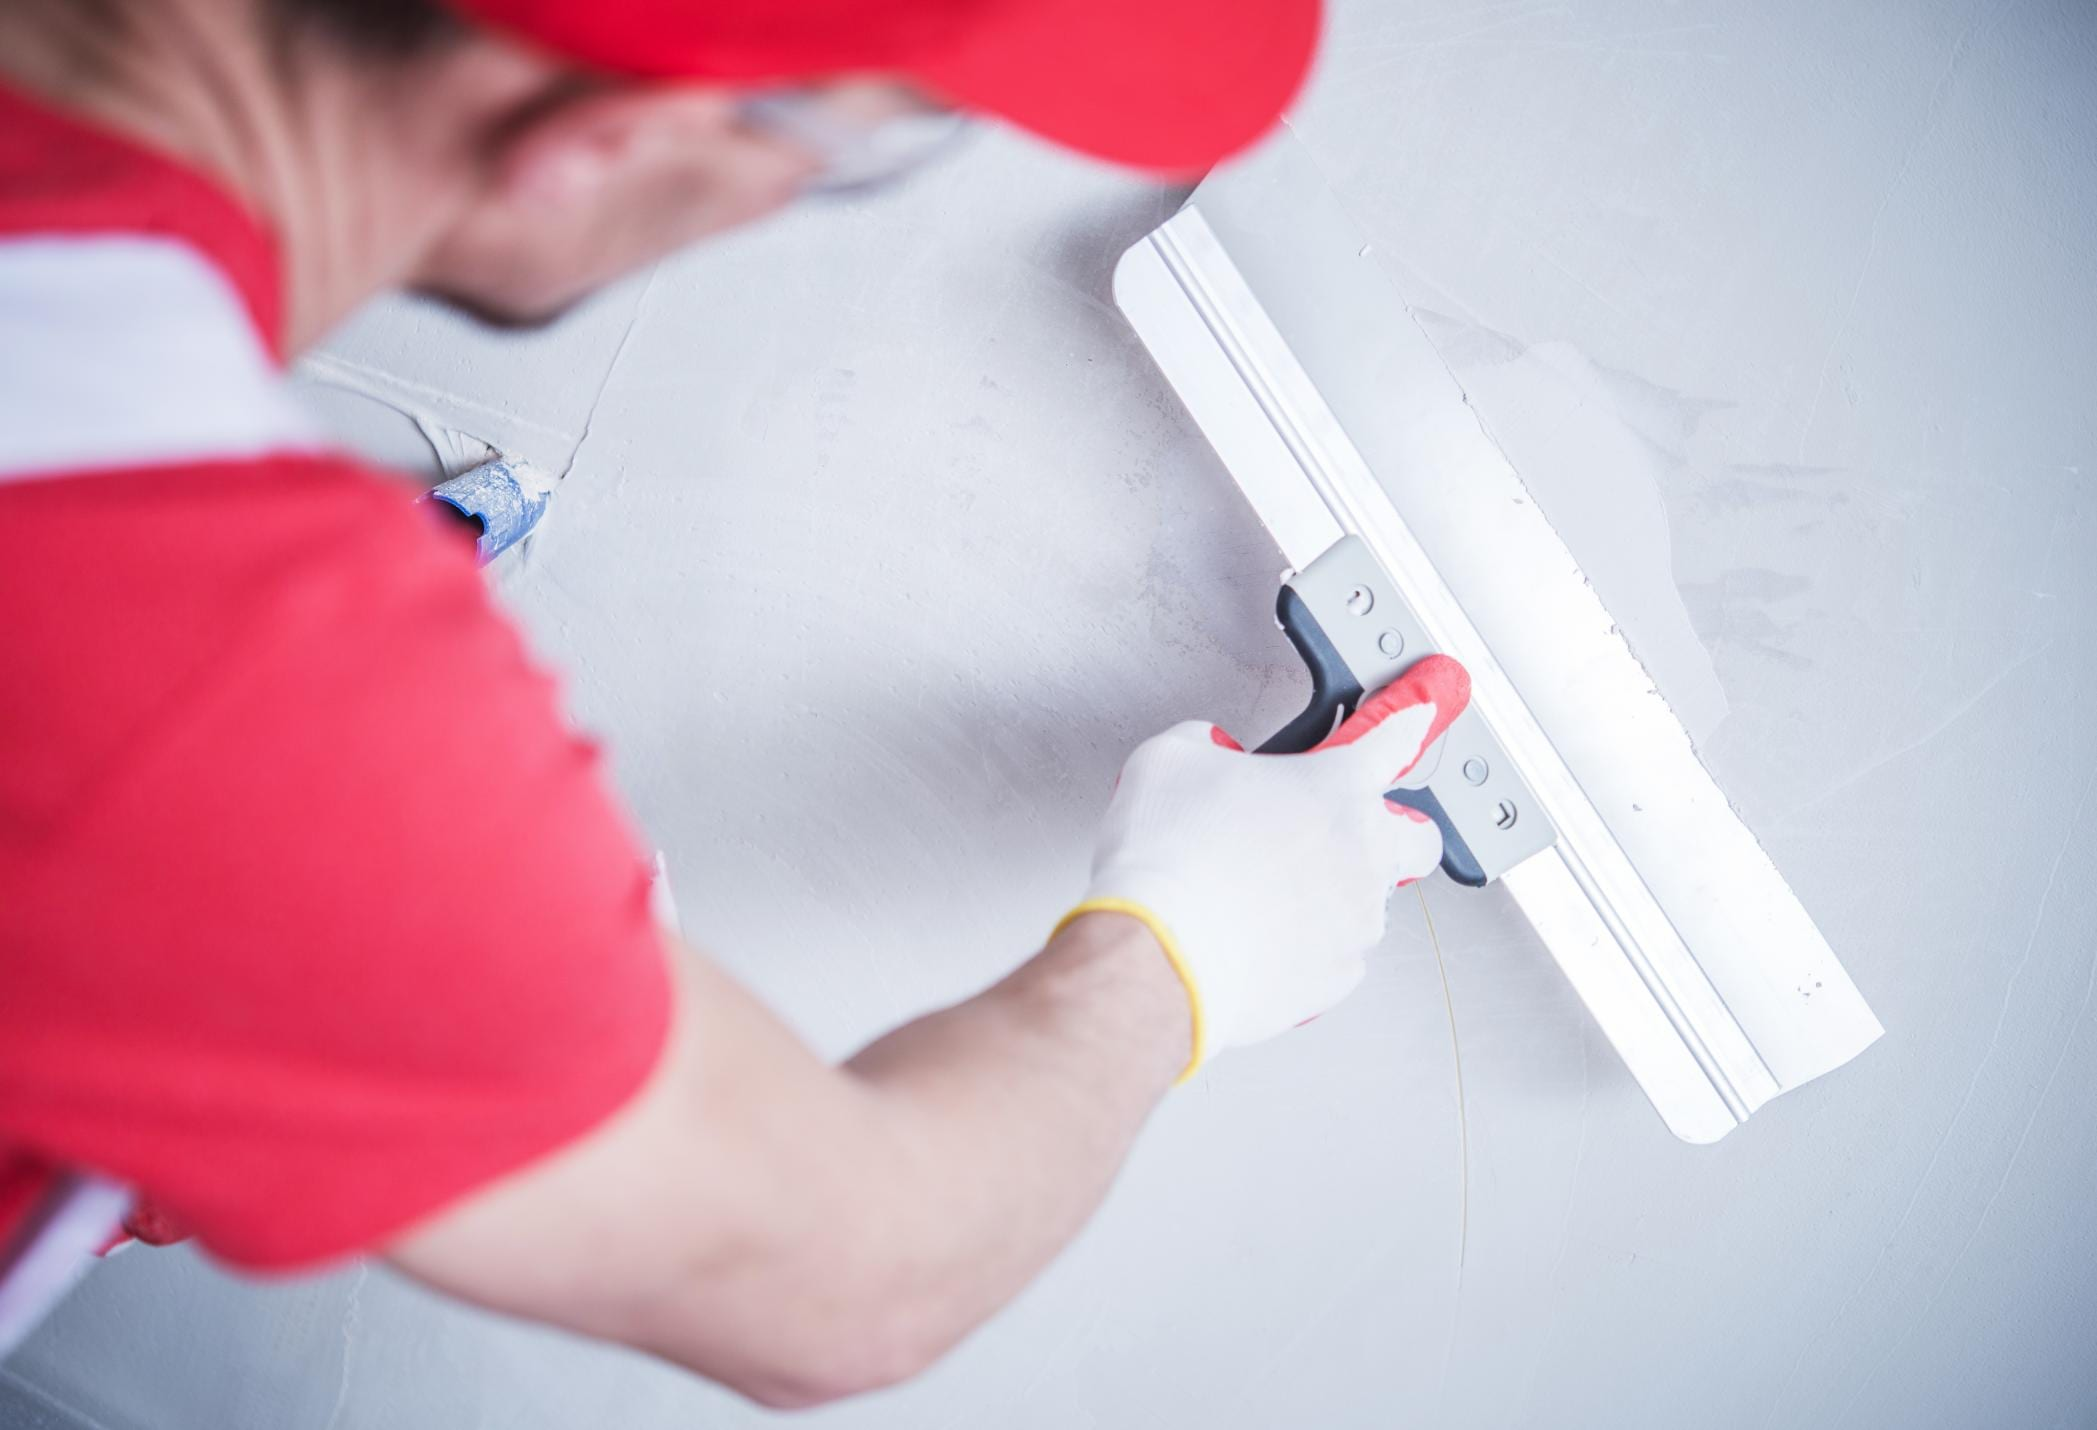 This is a picture of a drywall patching and repairs.